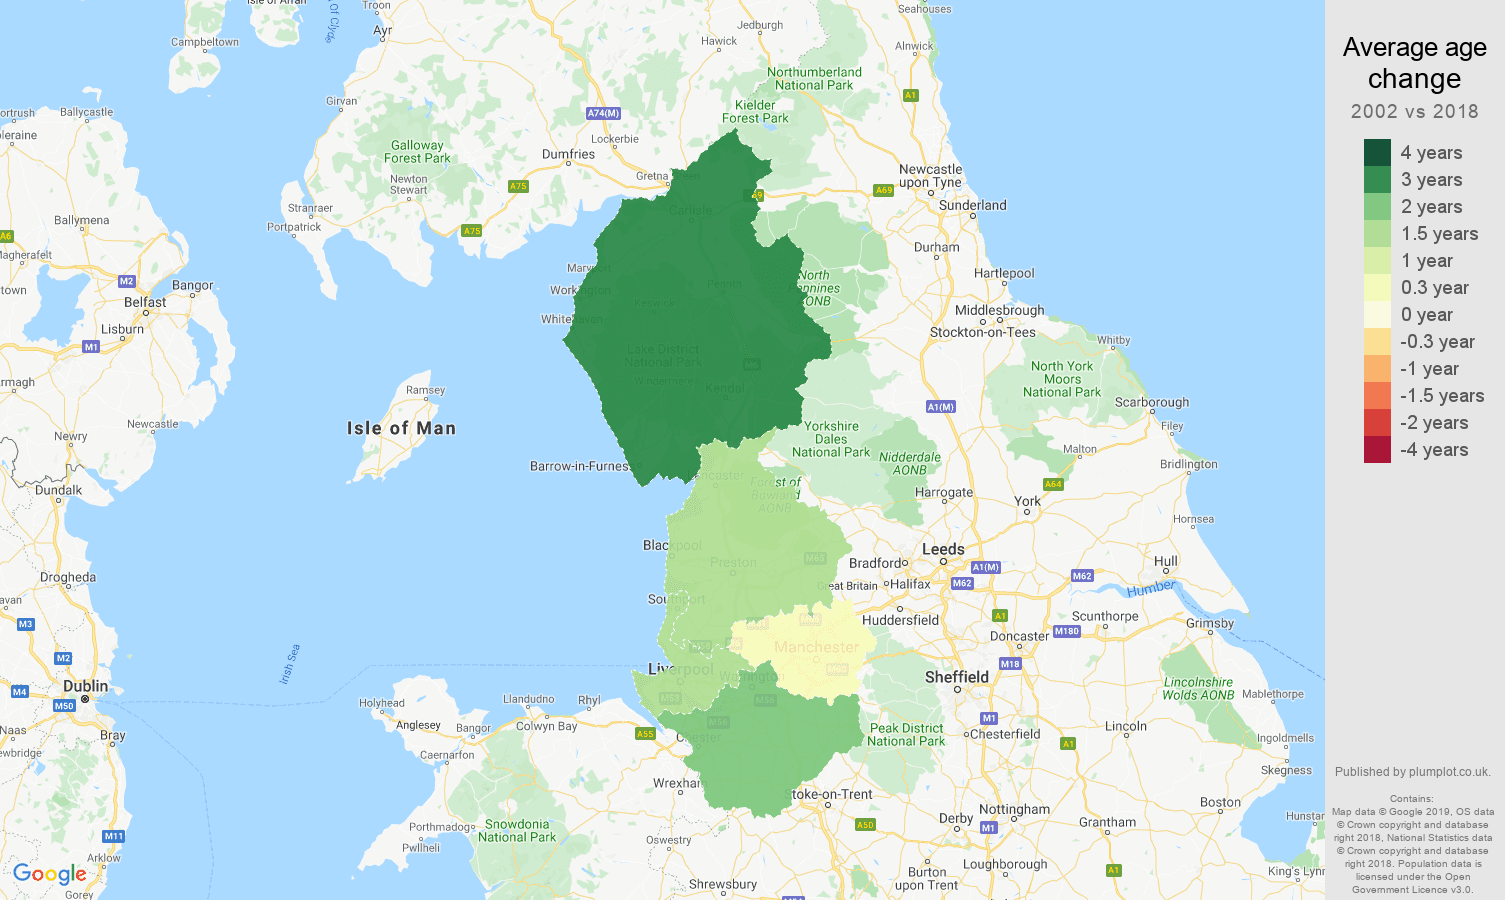 North West average age change map